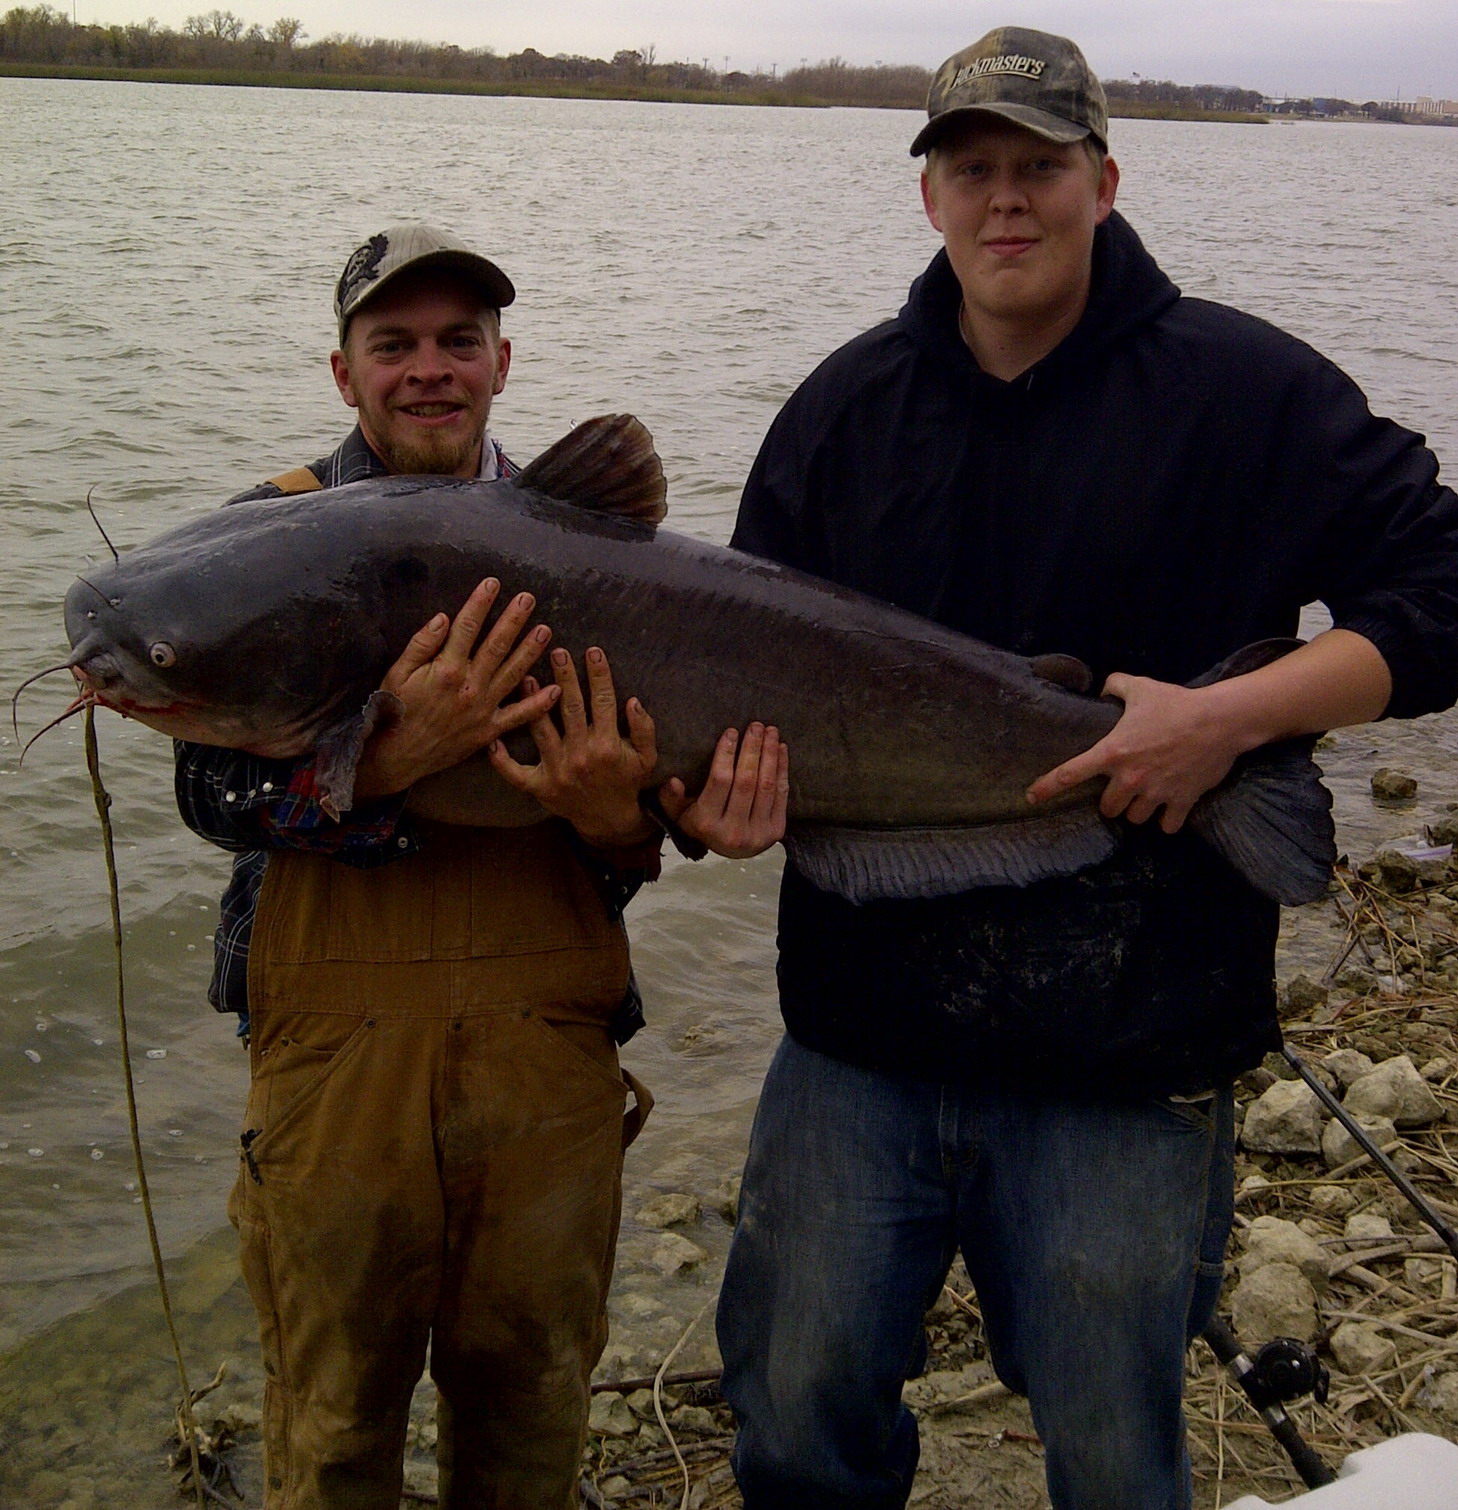 Central texas catfish angling great in colorado brazos for What does cat fishing mean